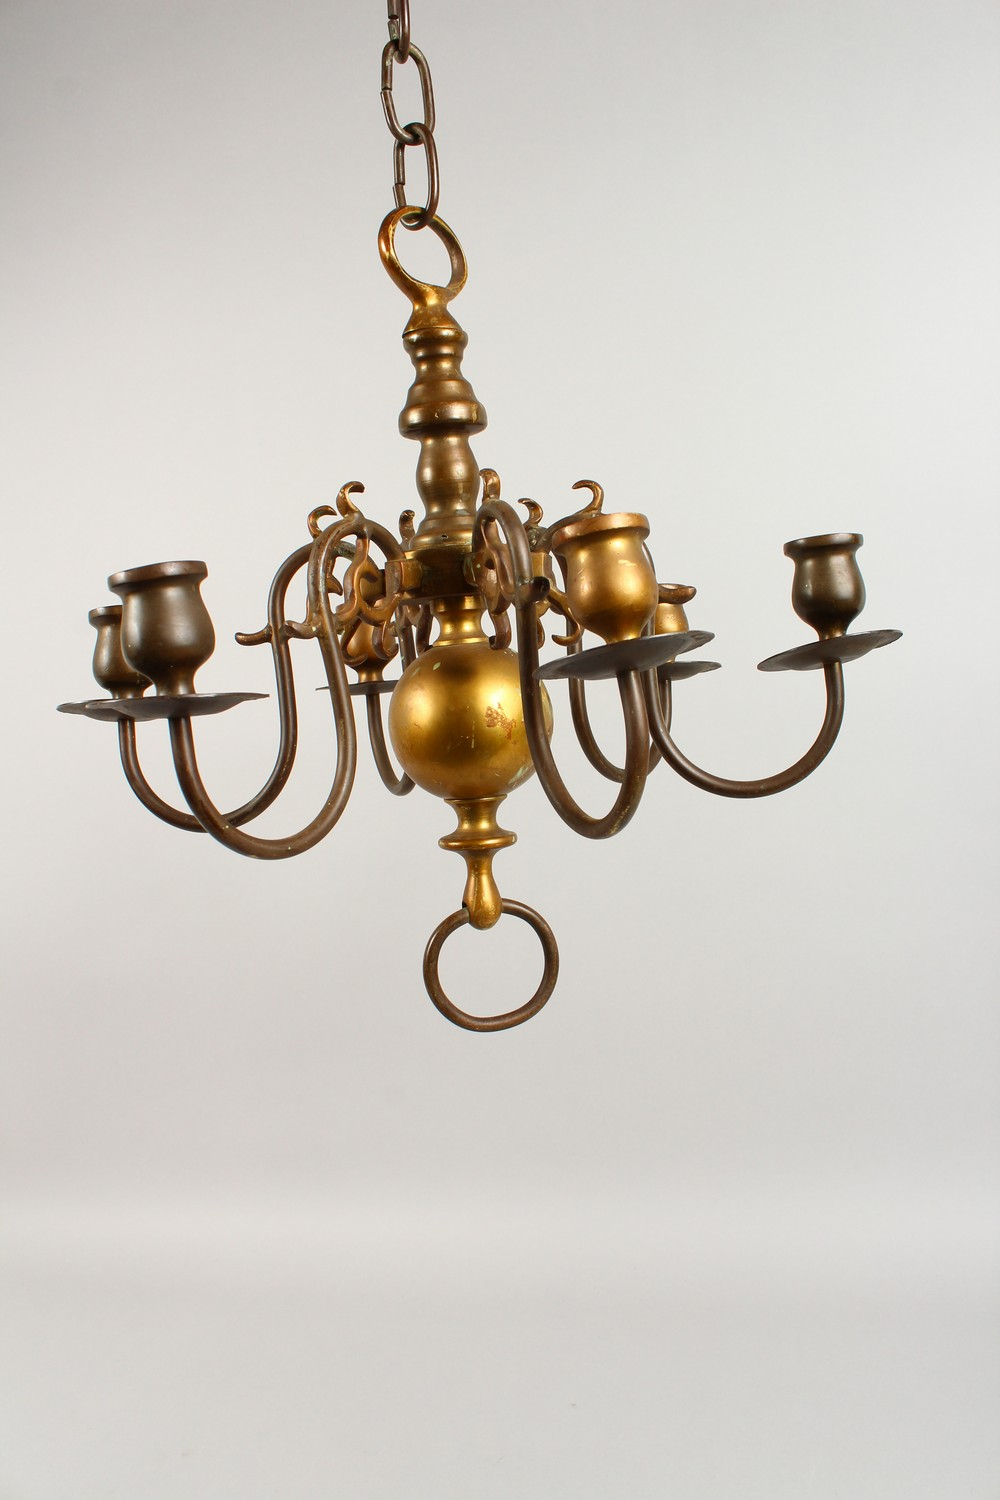 Lot 1496 - A SMALL DUTCH BRONZE SIX BRANCH CHANDELIER. 14ins high.